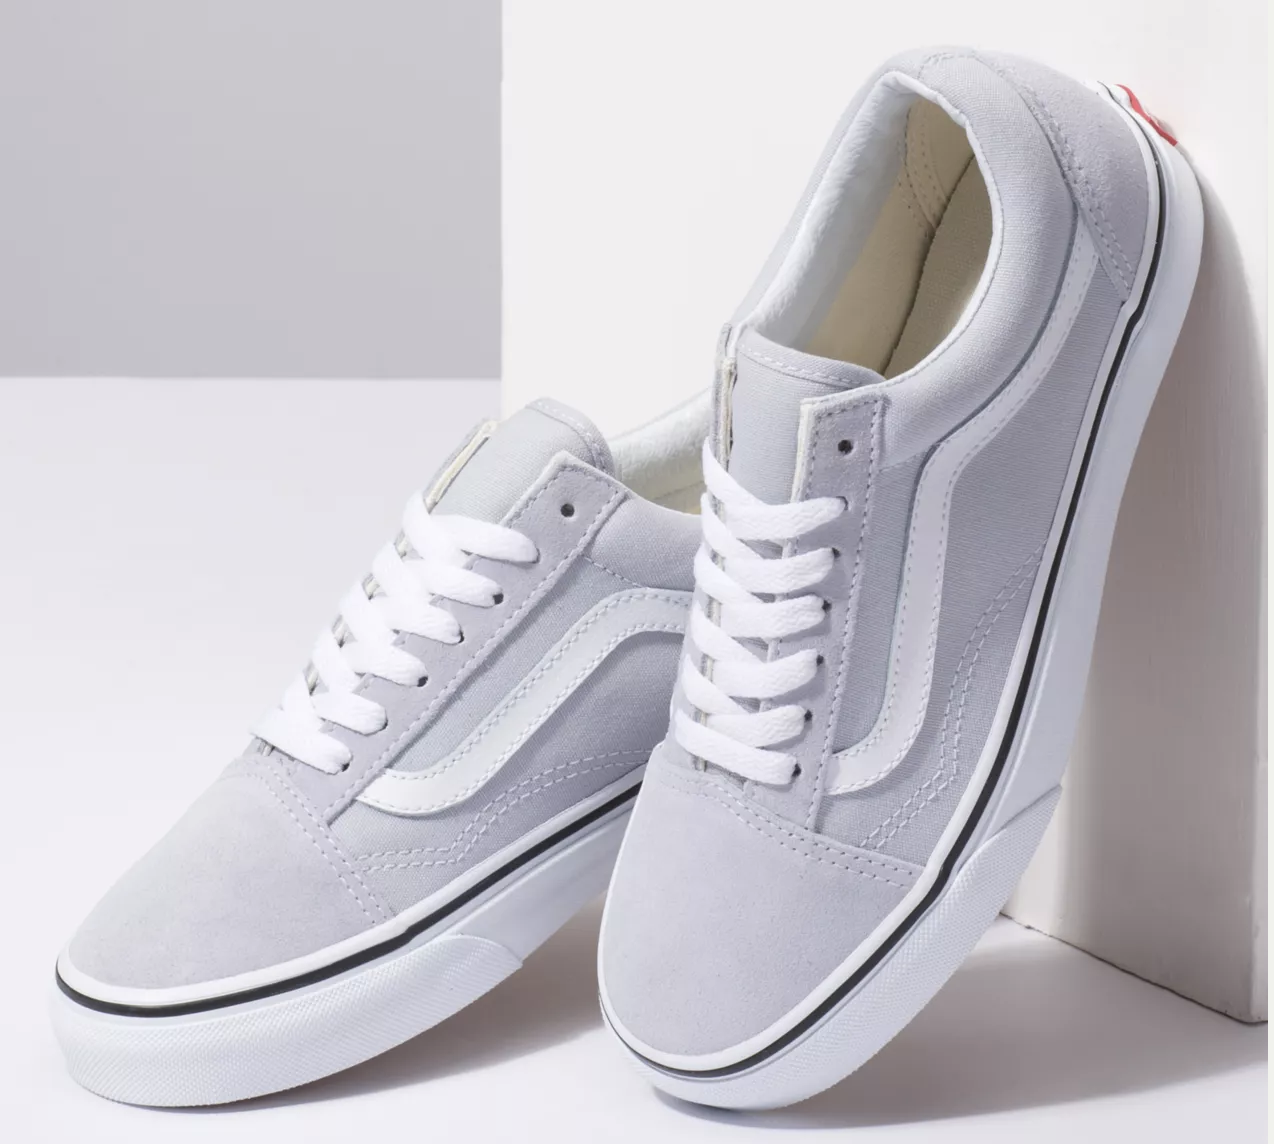 Old Skool | Shop Classic Shoes in 2020 | Vans old skool gray